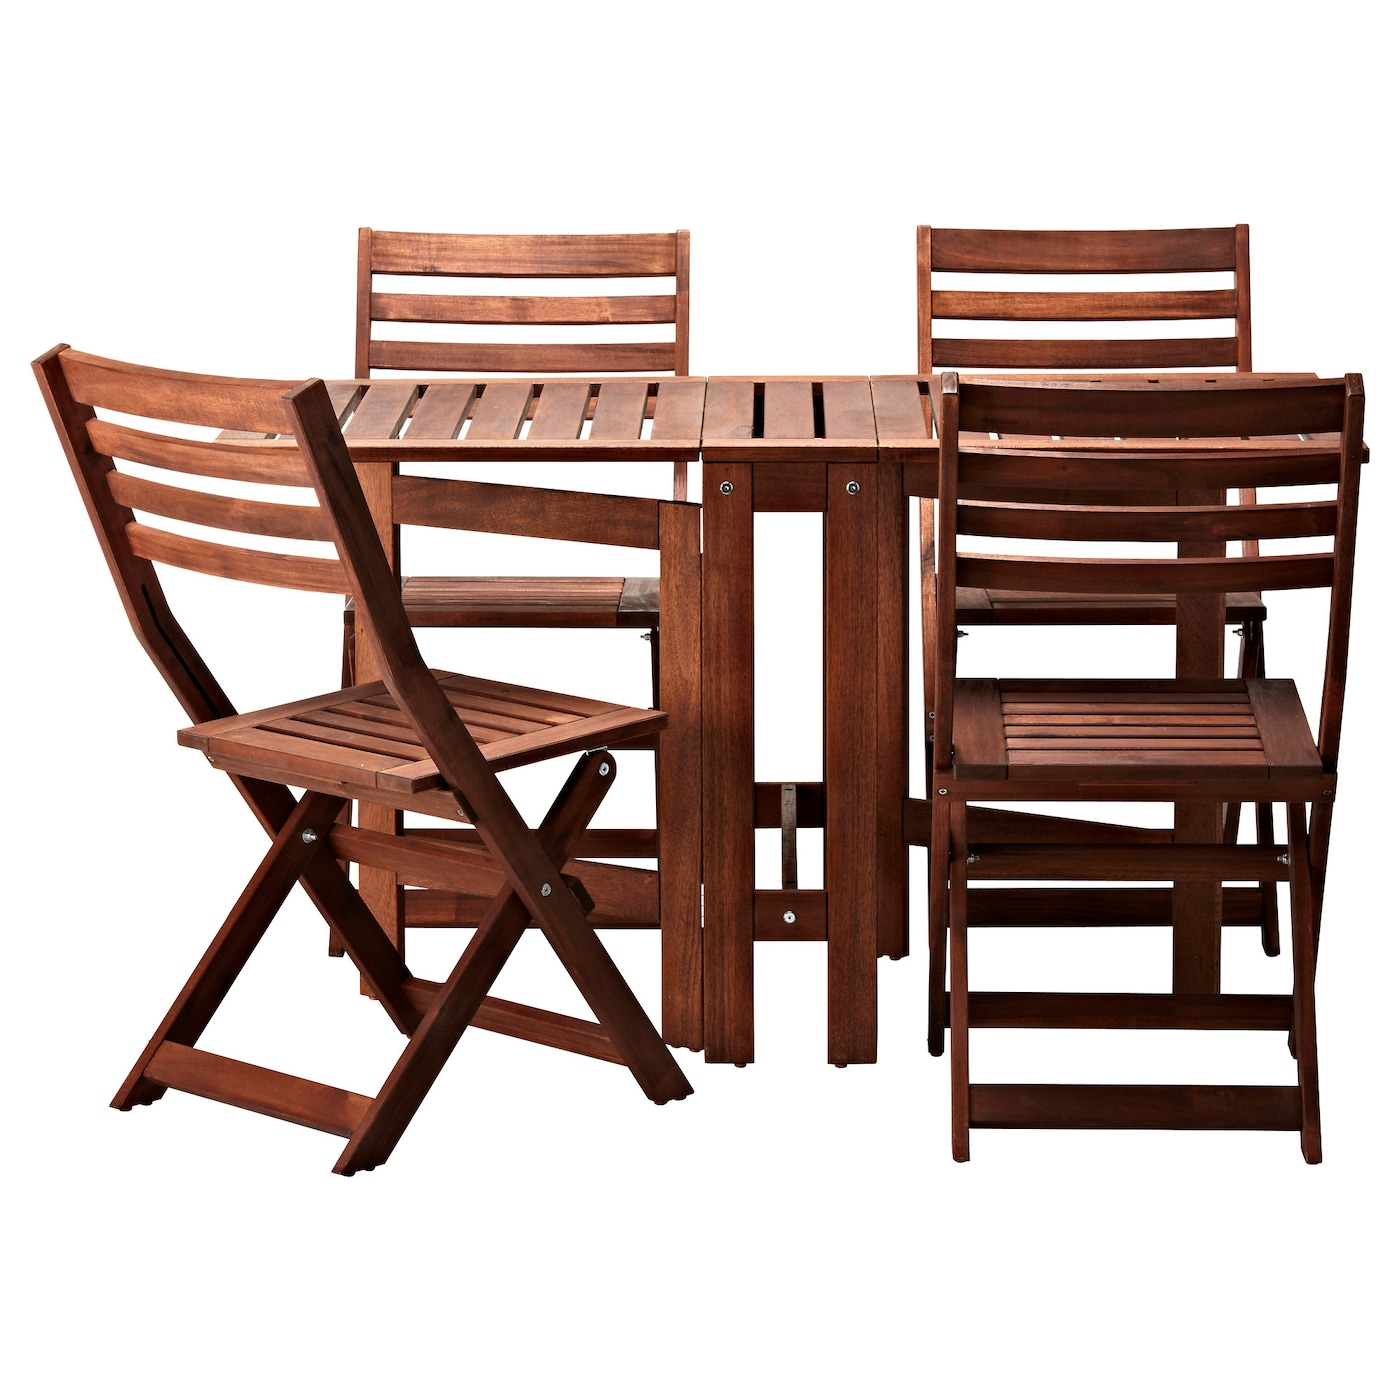 Pplar table 4 folding chairs outdoor brown stained ikea for Table ikea 4 99